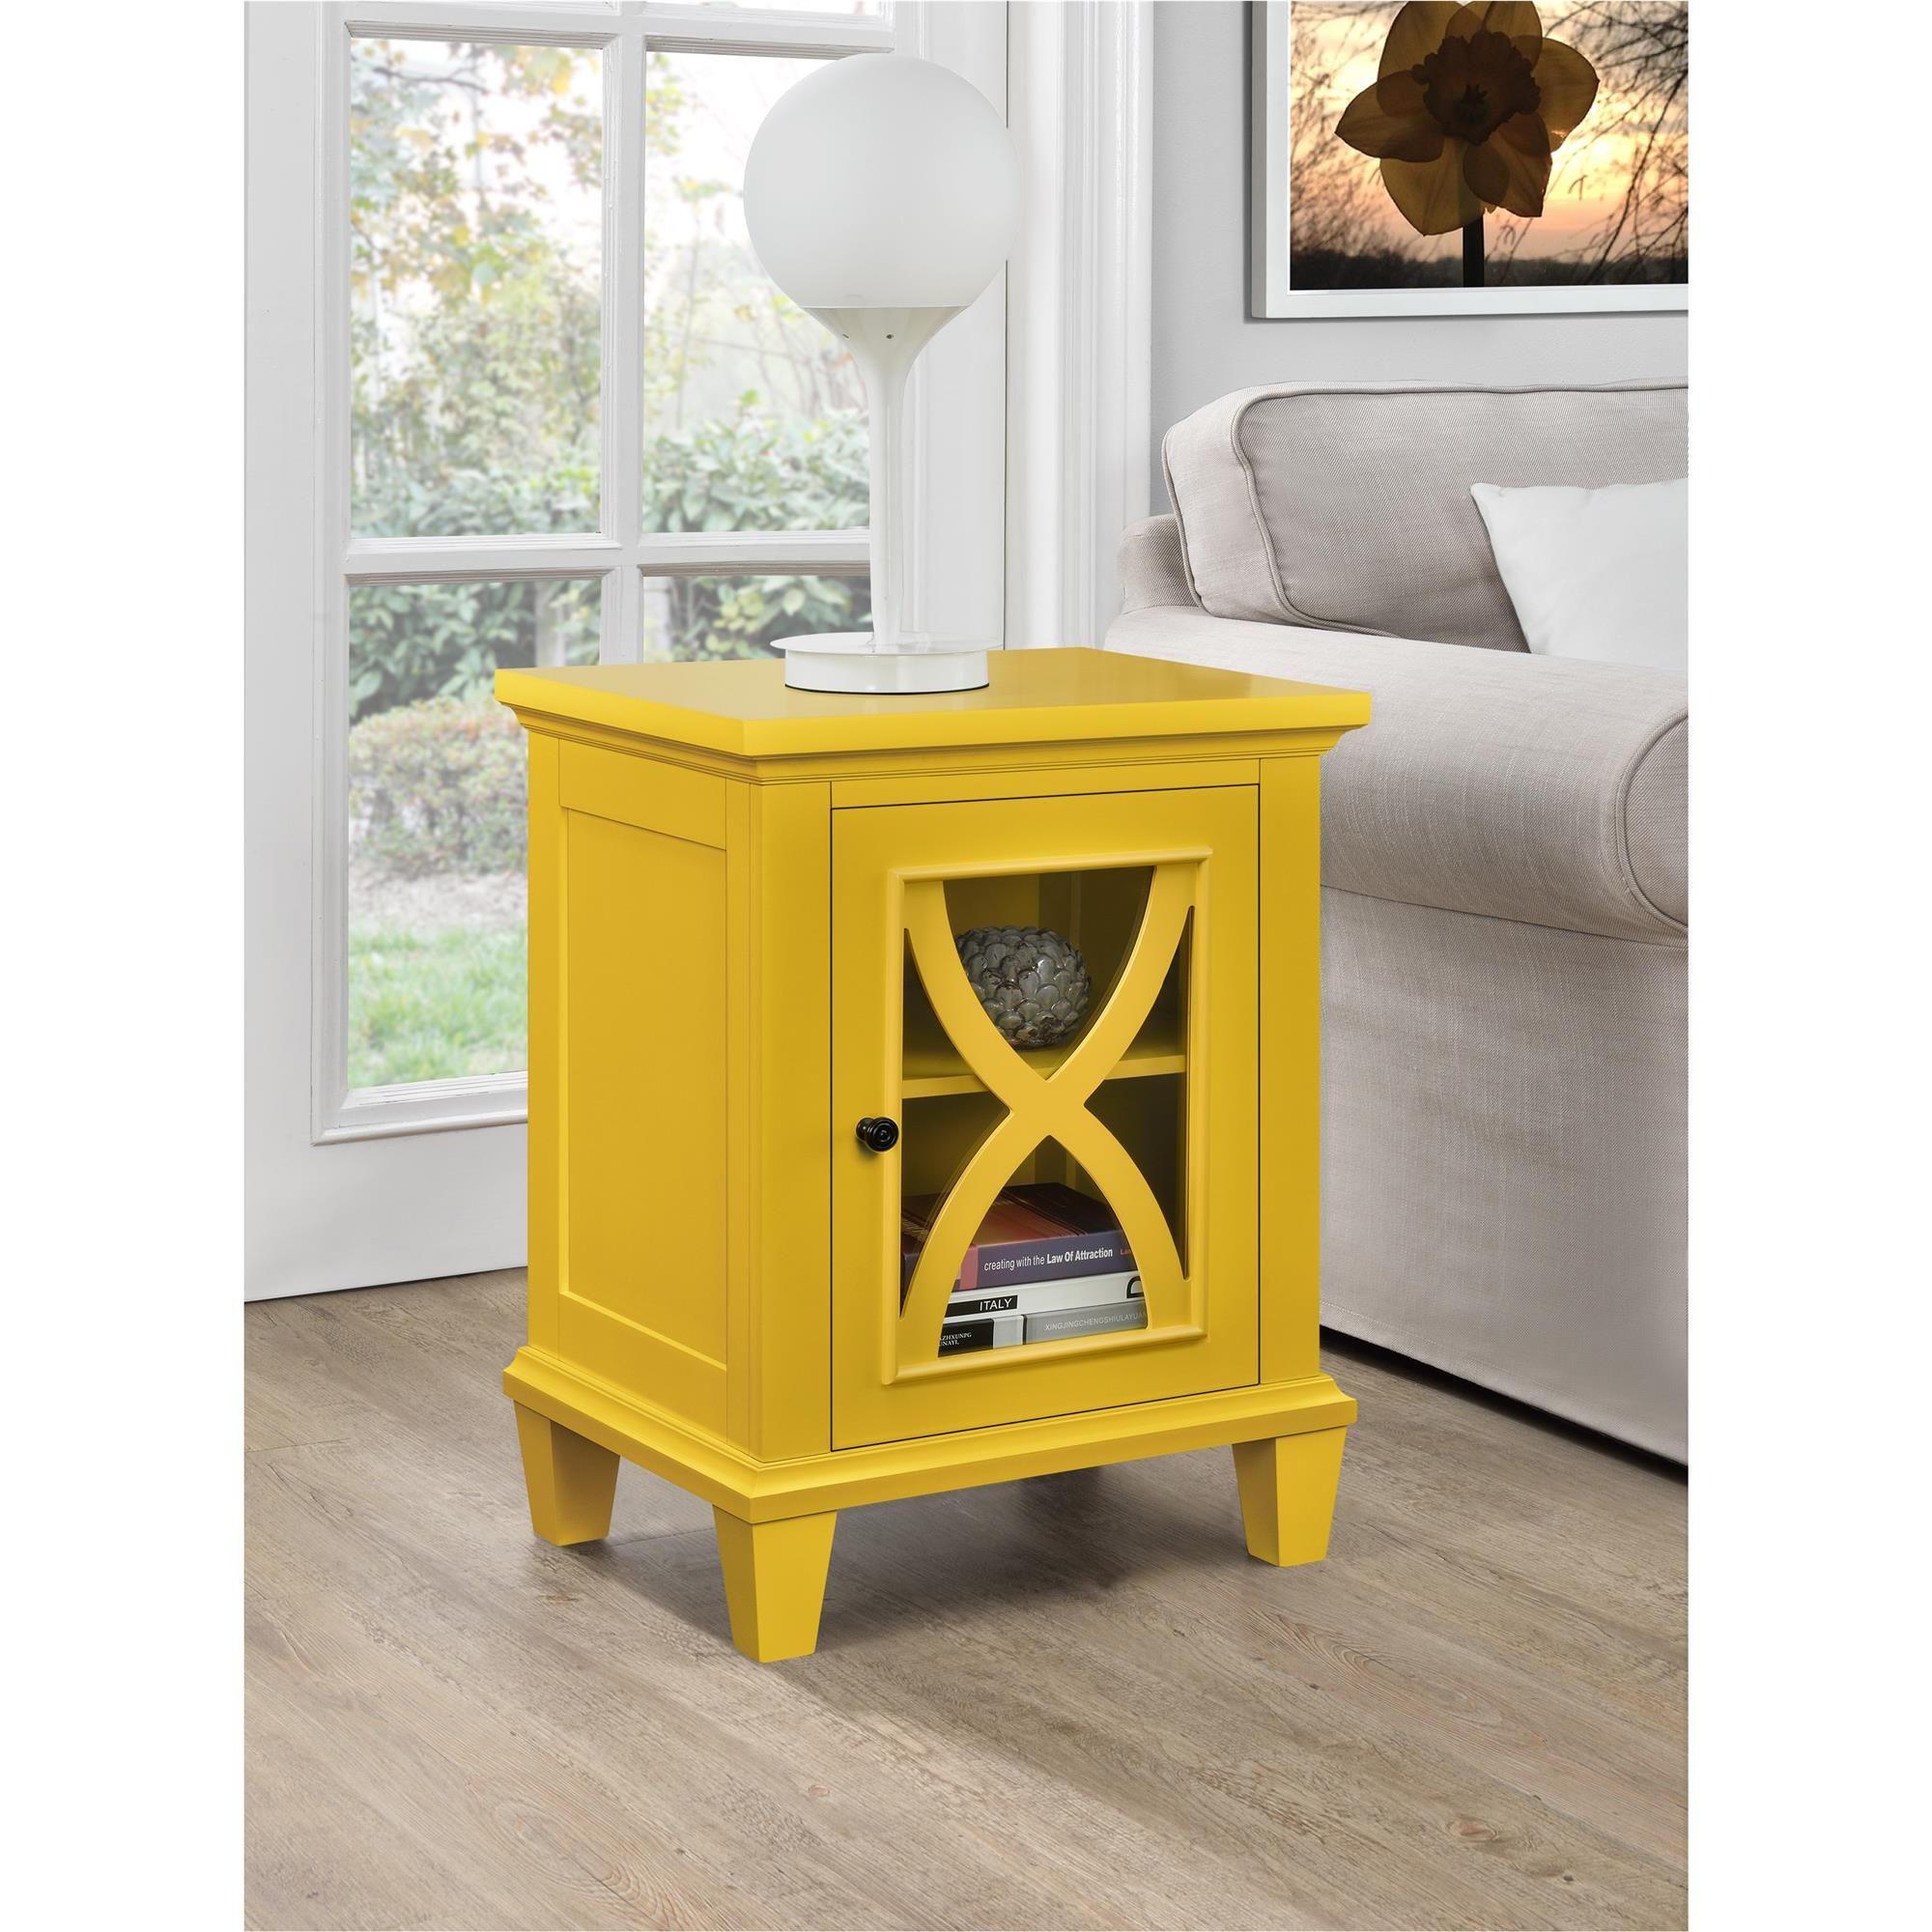 dorel home furnishings ellington yellow single door accent cabinet table with doors buffet small side shelves outdoor dining chairs clearance xmas tablecloths and runners napkins